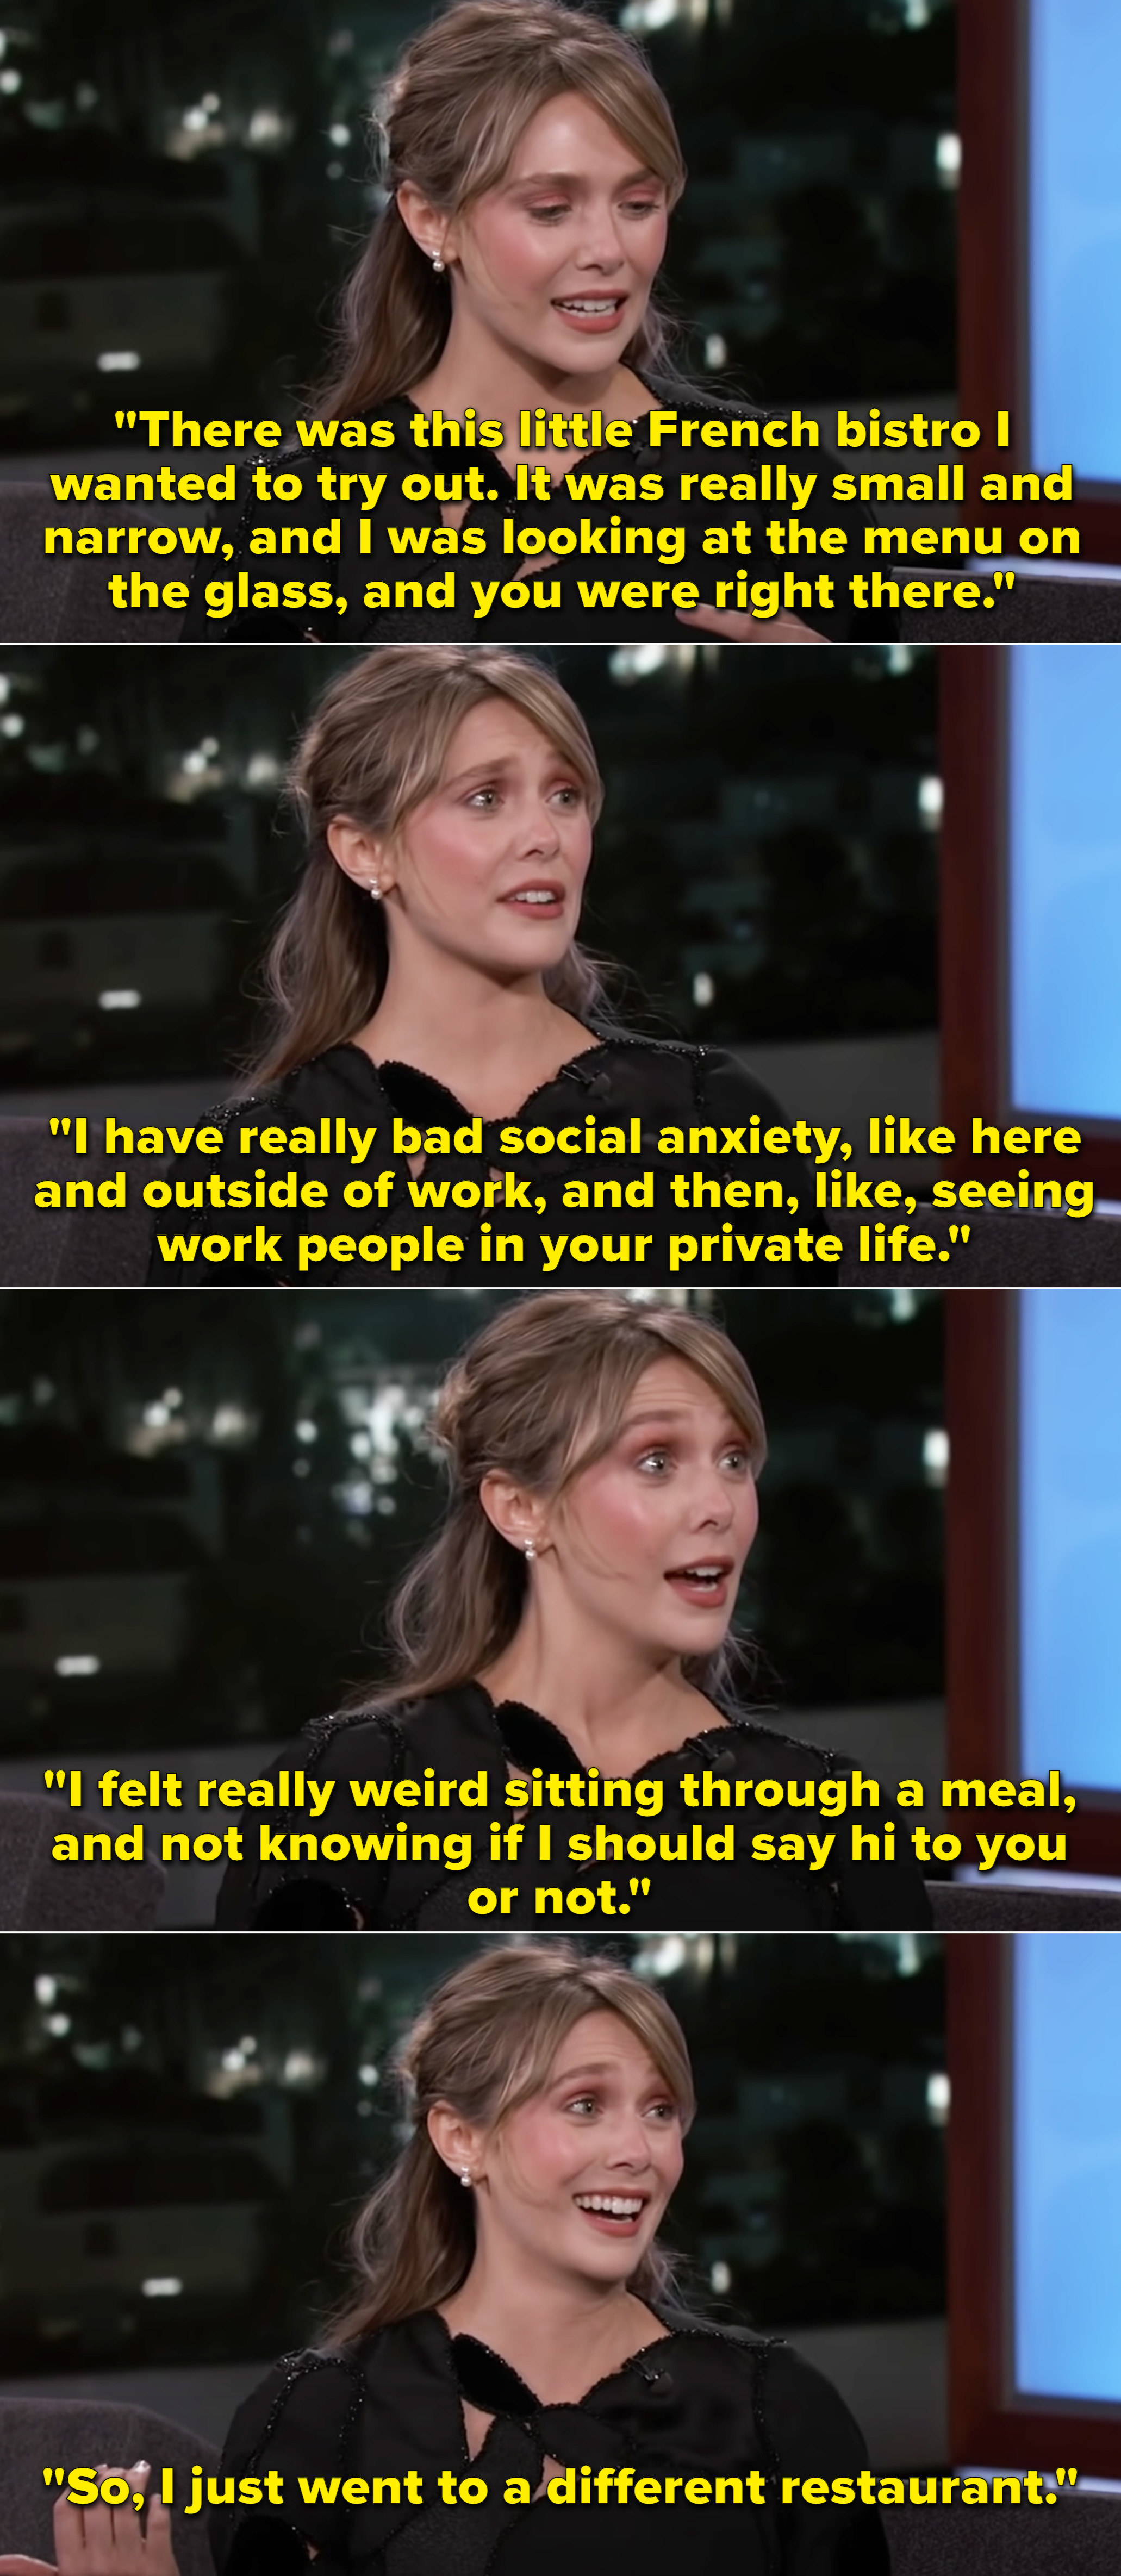 Elizabeth saying that she has really bad social anxiety and when she spotted Jimmy Kimmel in a restaurant she didn't go inside because she didn't want to sit through a meal not knowing if she should say hi or not